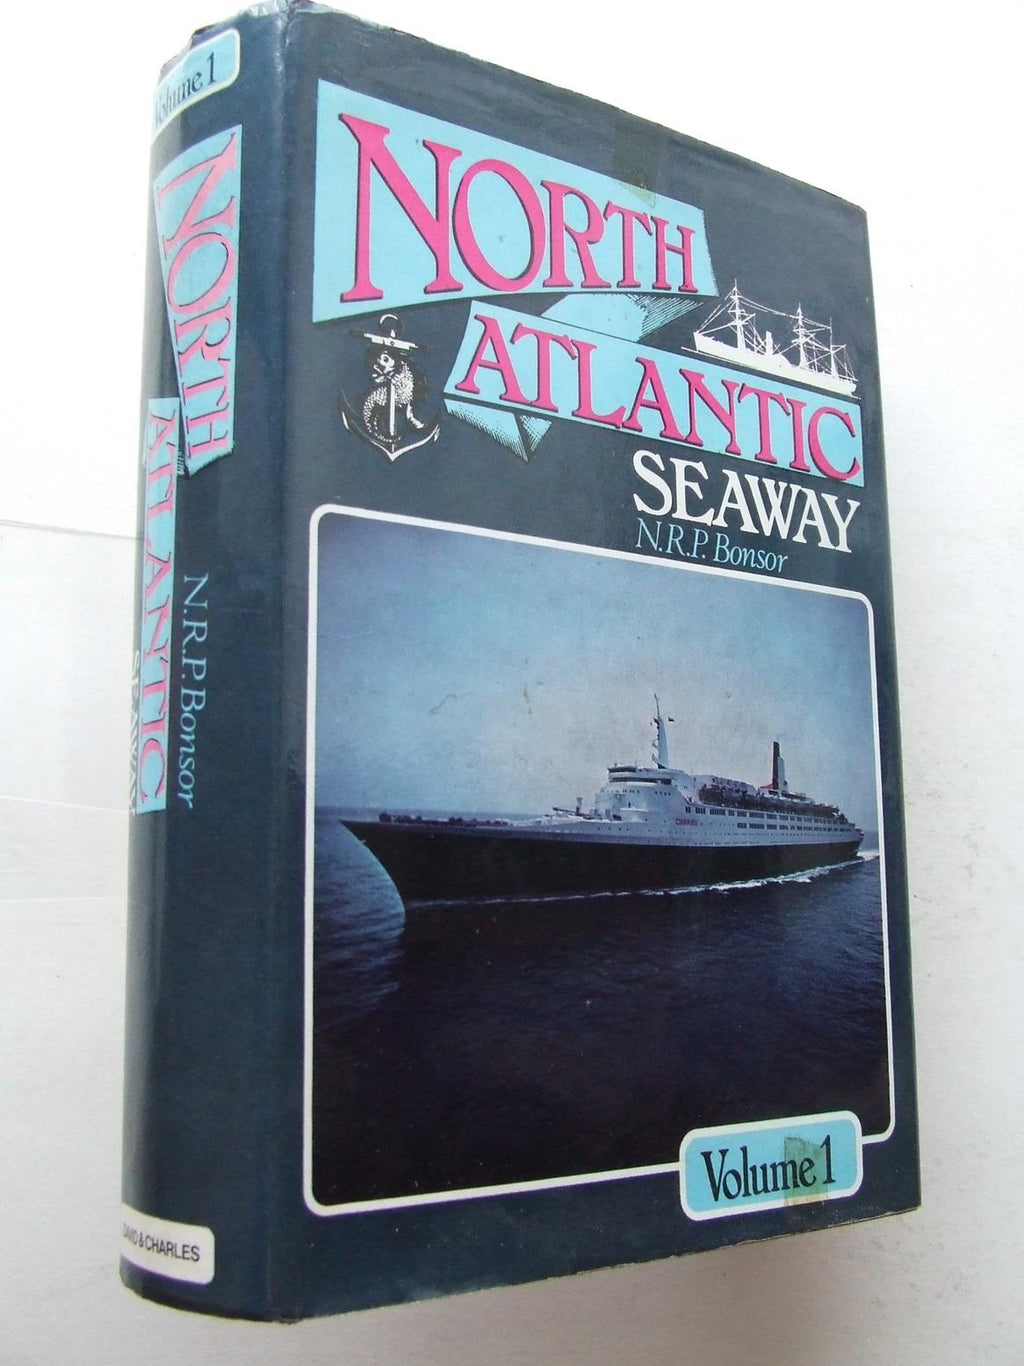 North Atlantic Seaway